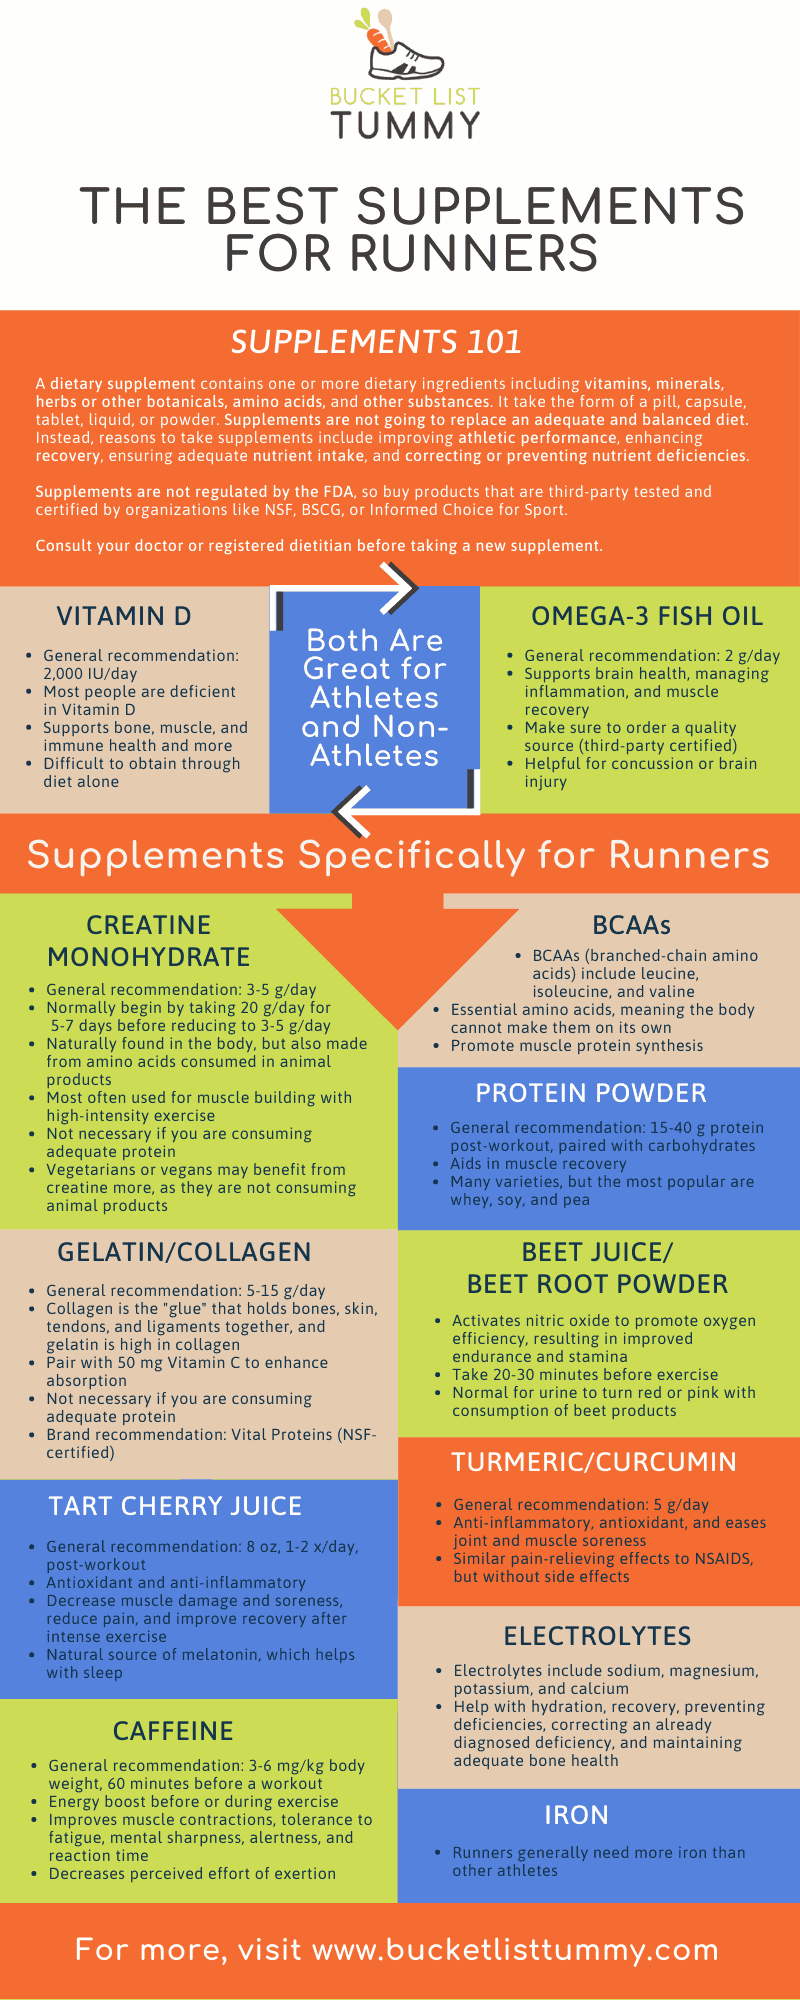 Infographic about supplements for runners